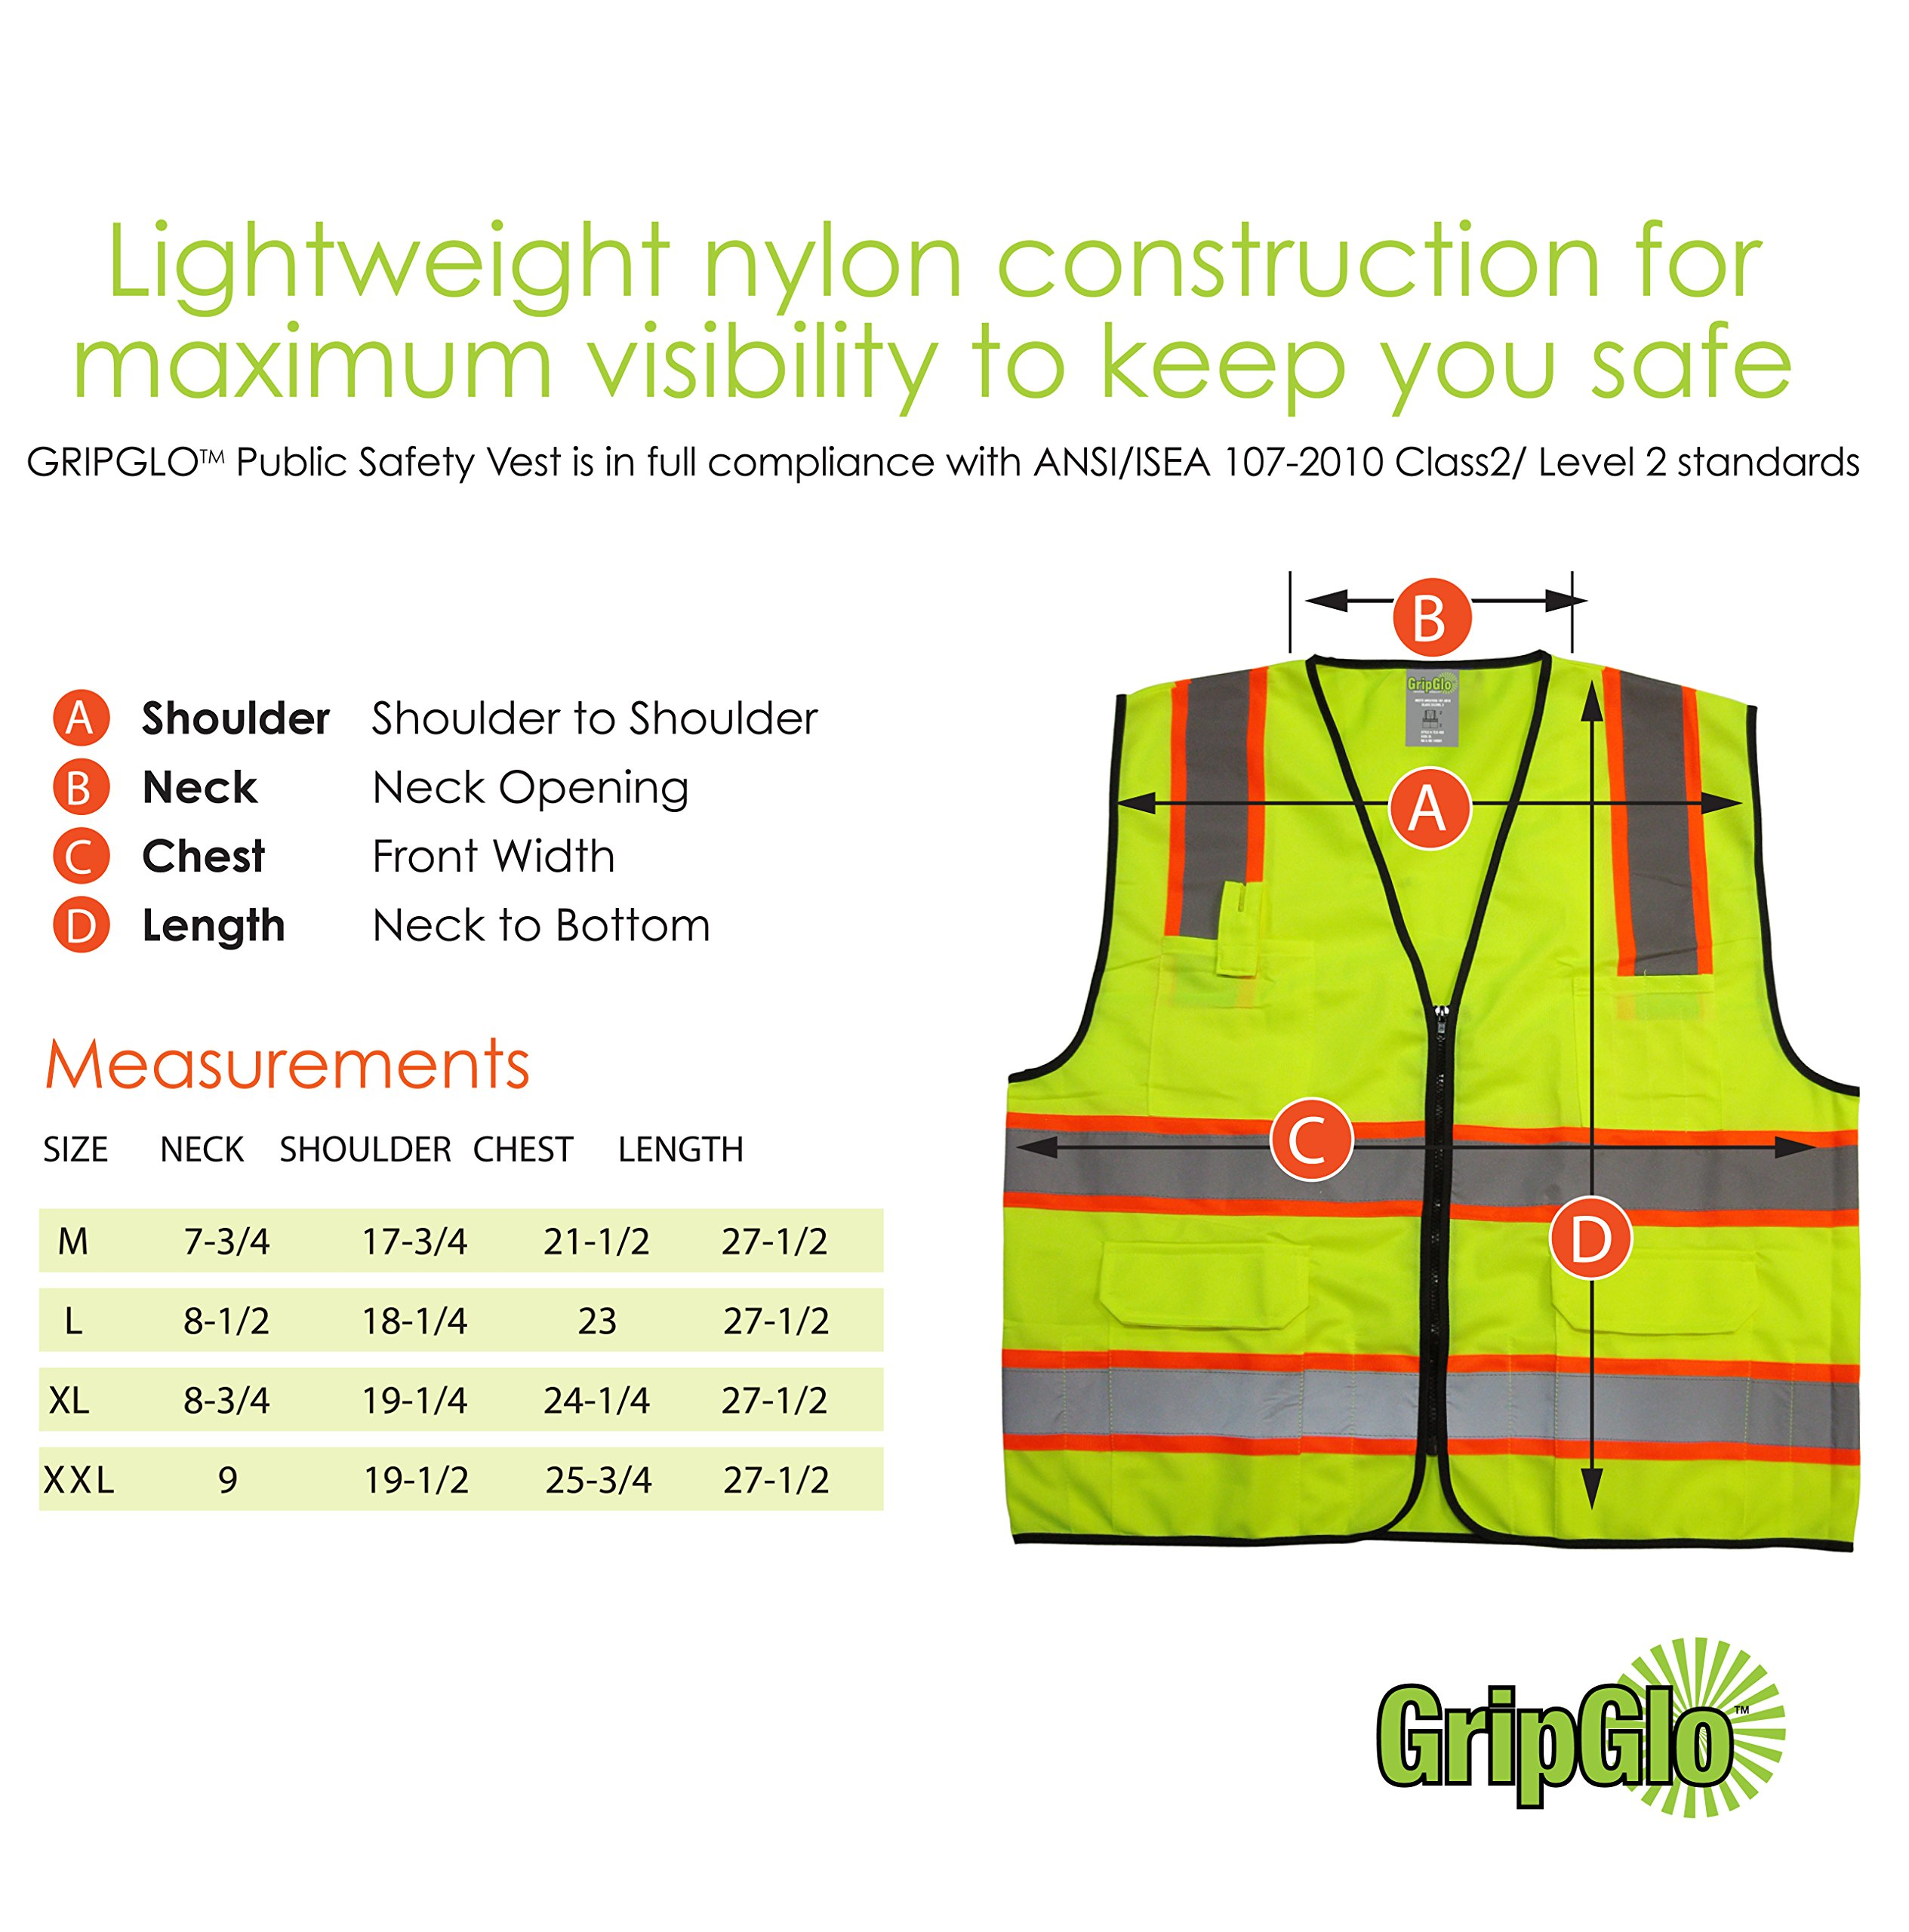 GripGlo TLS-432 Amazing High Visibility Reflective Safety Vest With 6 Multi-Functional Pockets Neon Lime Zipper Front, 2'' Reflective Strips With ORANGE TRIM For MAXIMUM VISIBILITY - Meets ANSI/ISEA 107-2010 - Class 2/Level 2 - Large by GripGlo™ (Image #5)